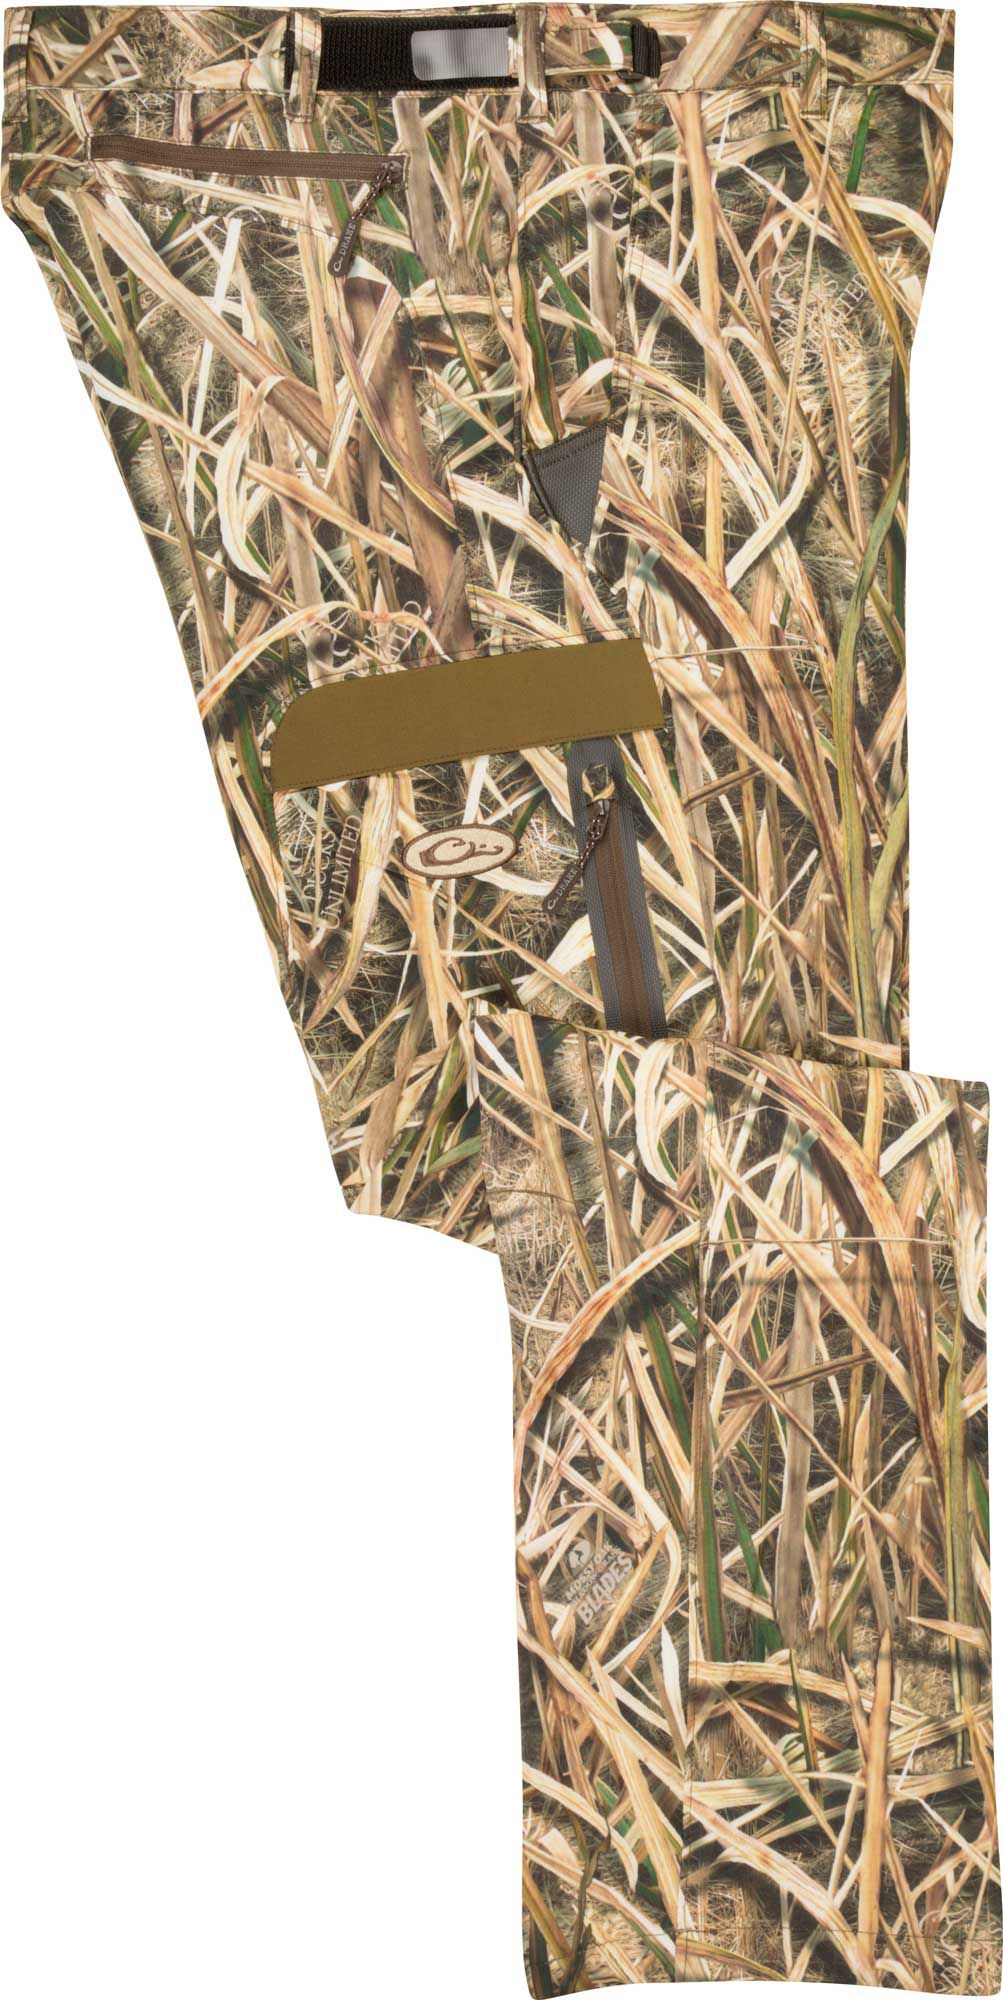 Drake Waterfowl Camo Tech Stretch Hunting Pants, Men's, XXL, Brown